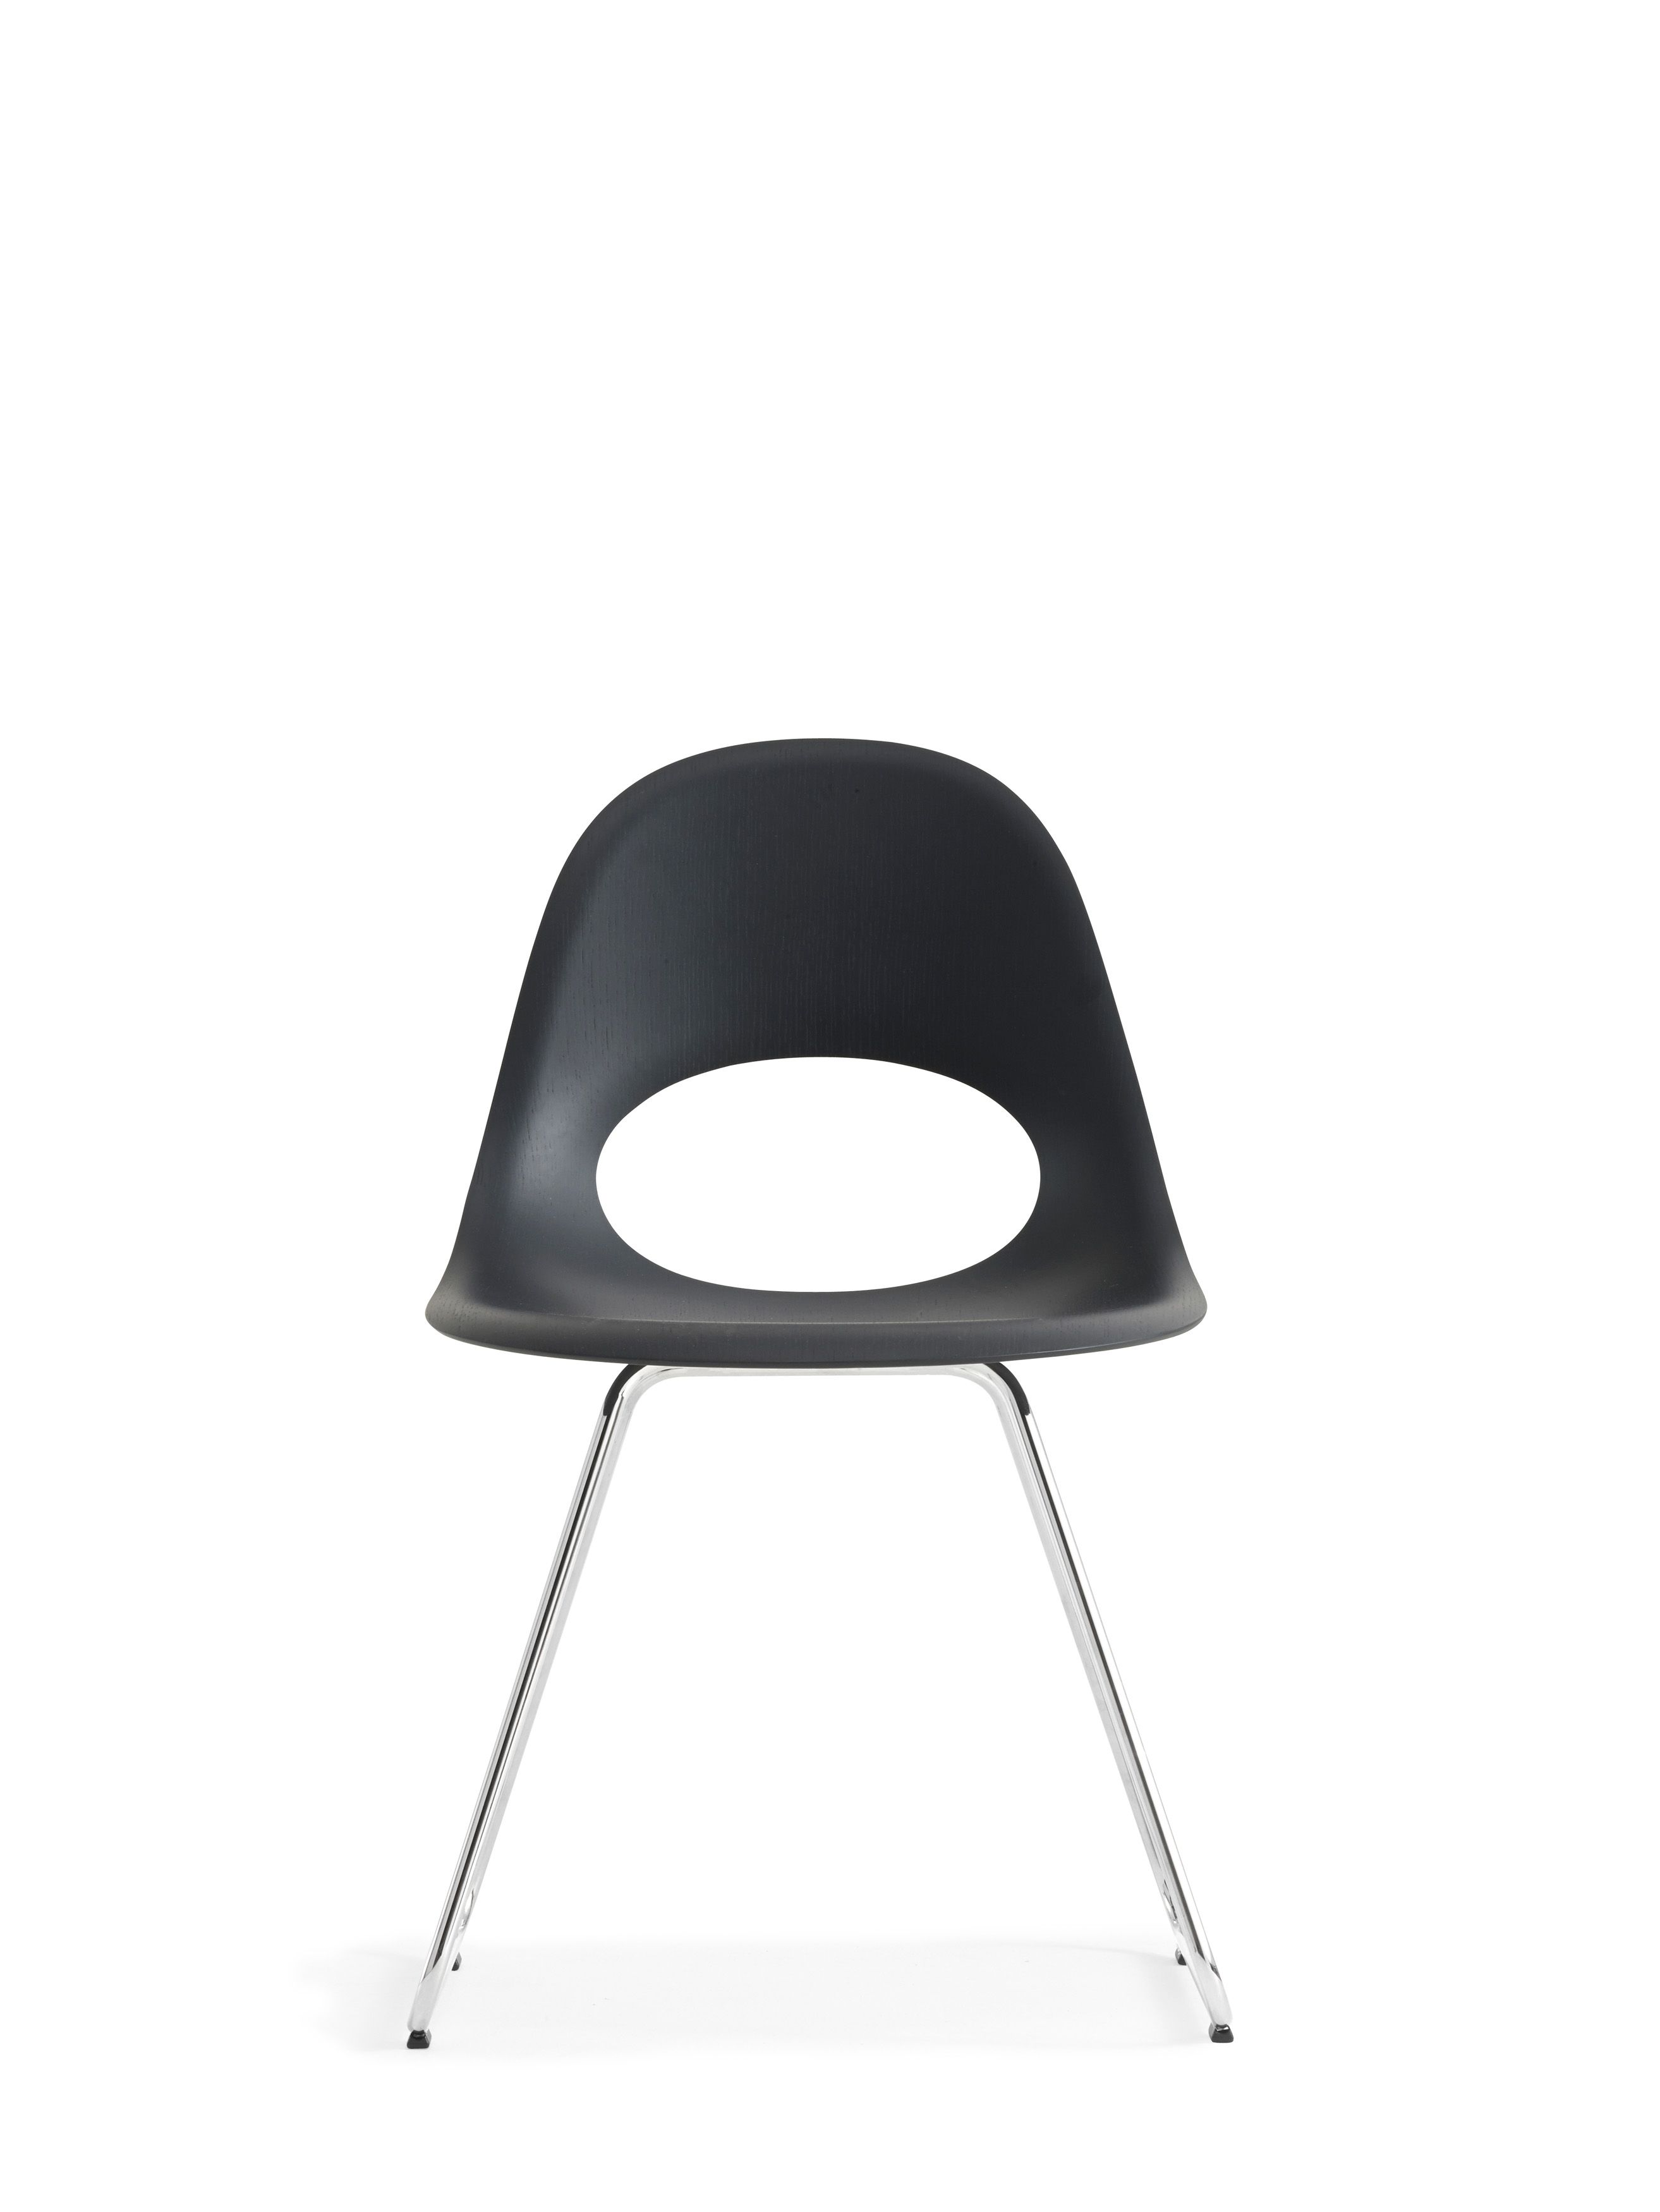 This beautiful SayO MiniLux Chair full painted black with metal legs seen from the front. Find out more at www.sayo.dk.